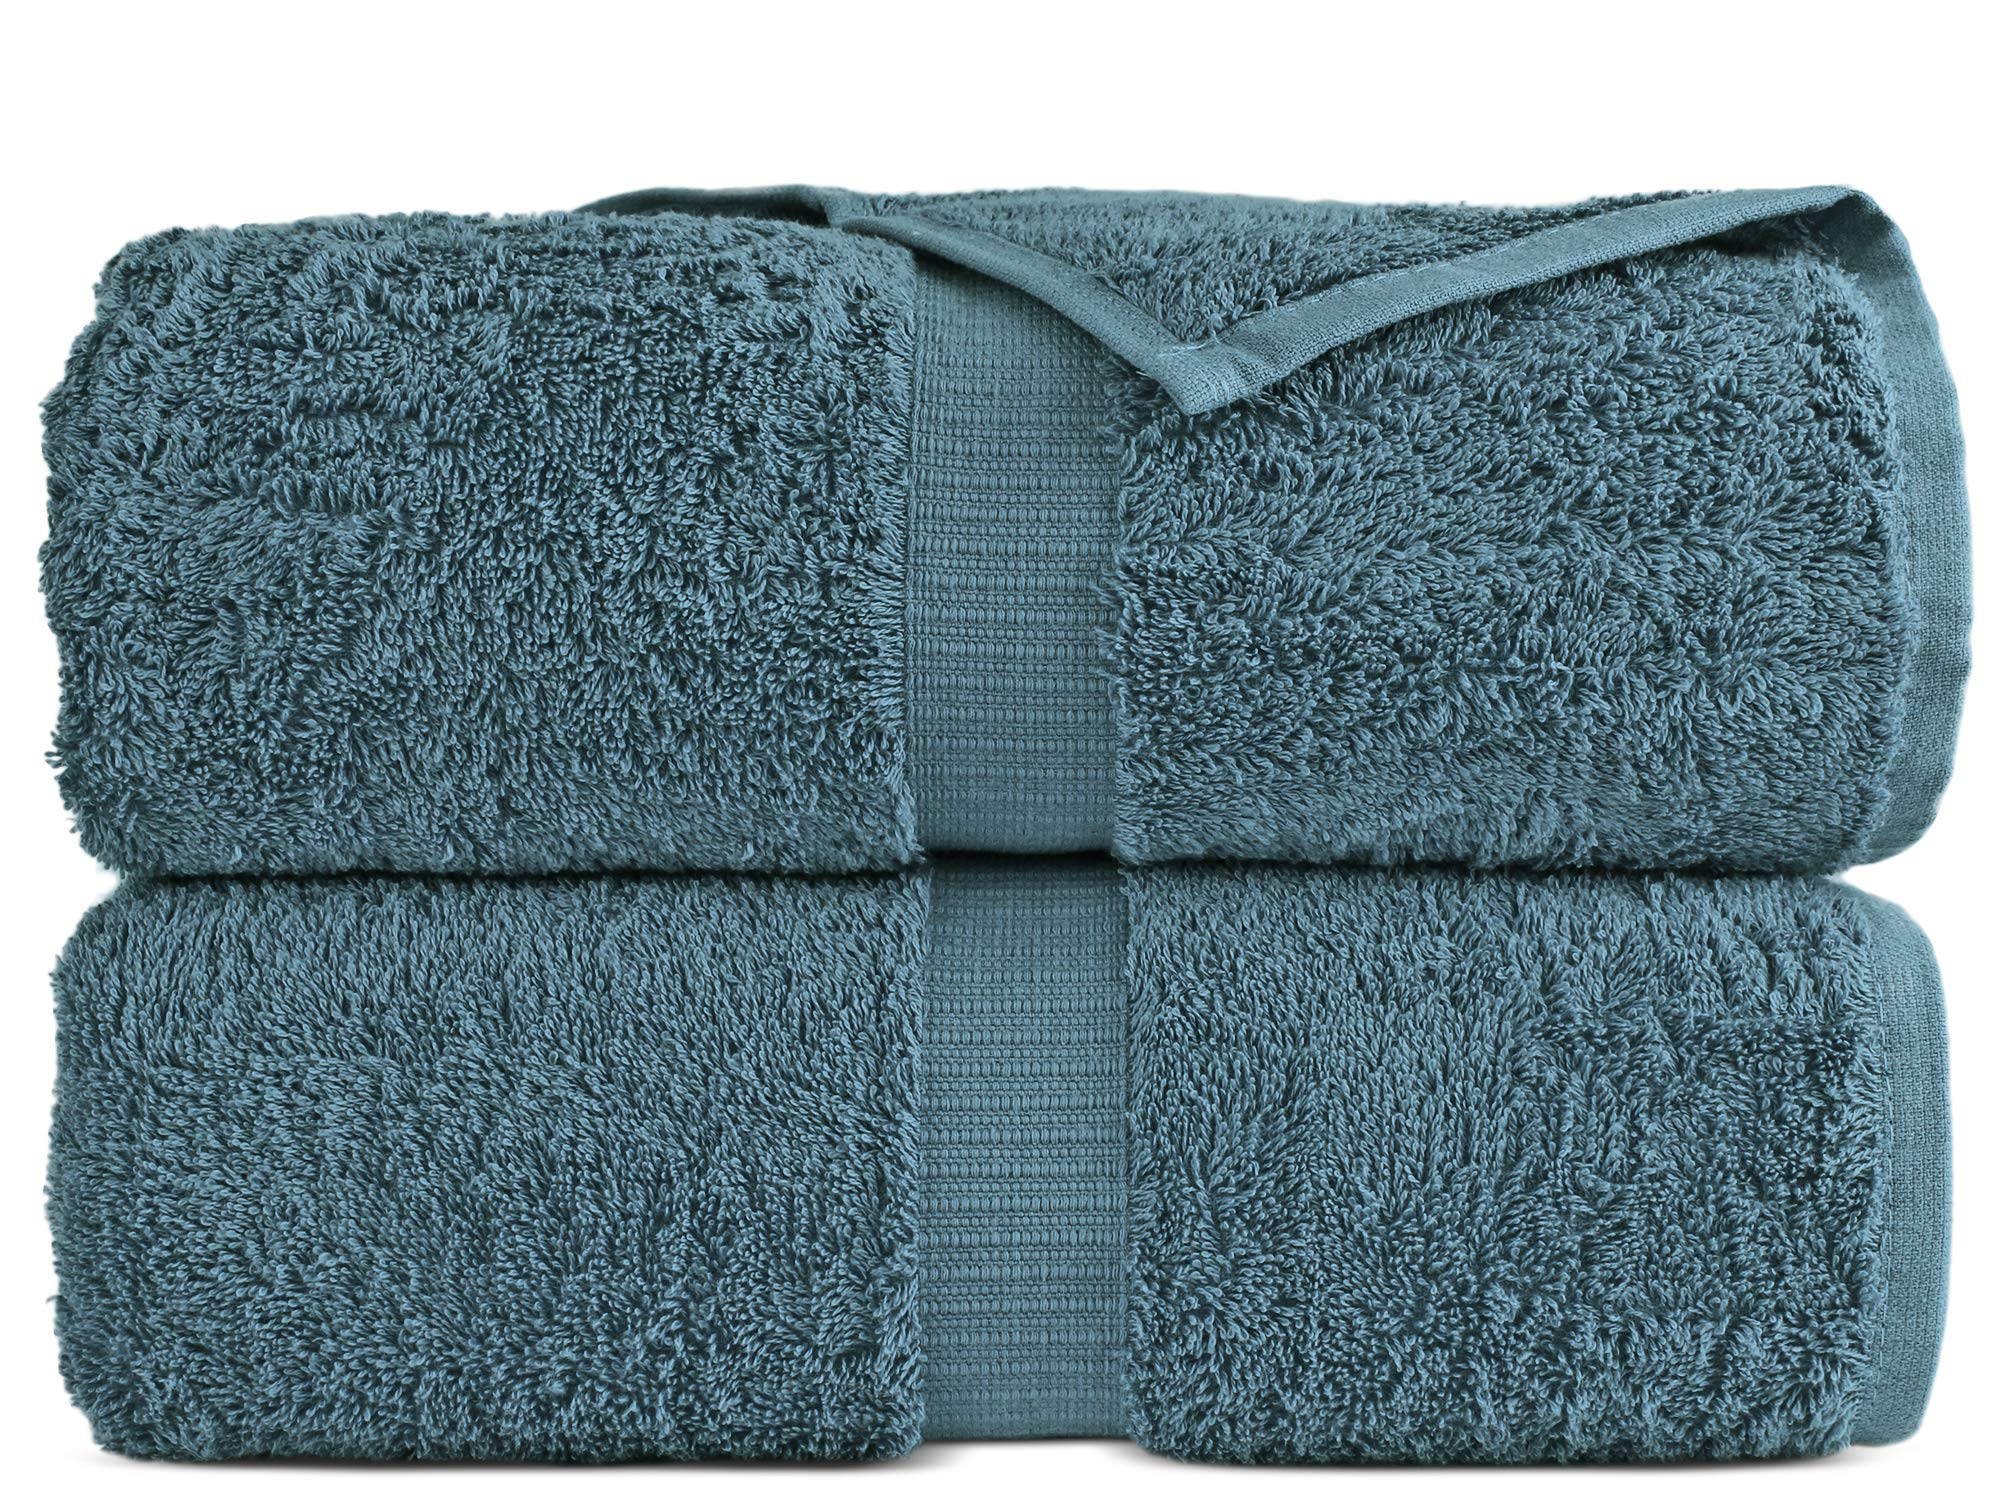 100% Luxury Turkish Cotton, Eco-Friendly, Soft and Super Absorbent 35'' x 70'' Large Bath Sheets (Tru Blue, Set of 2)